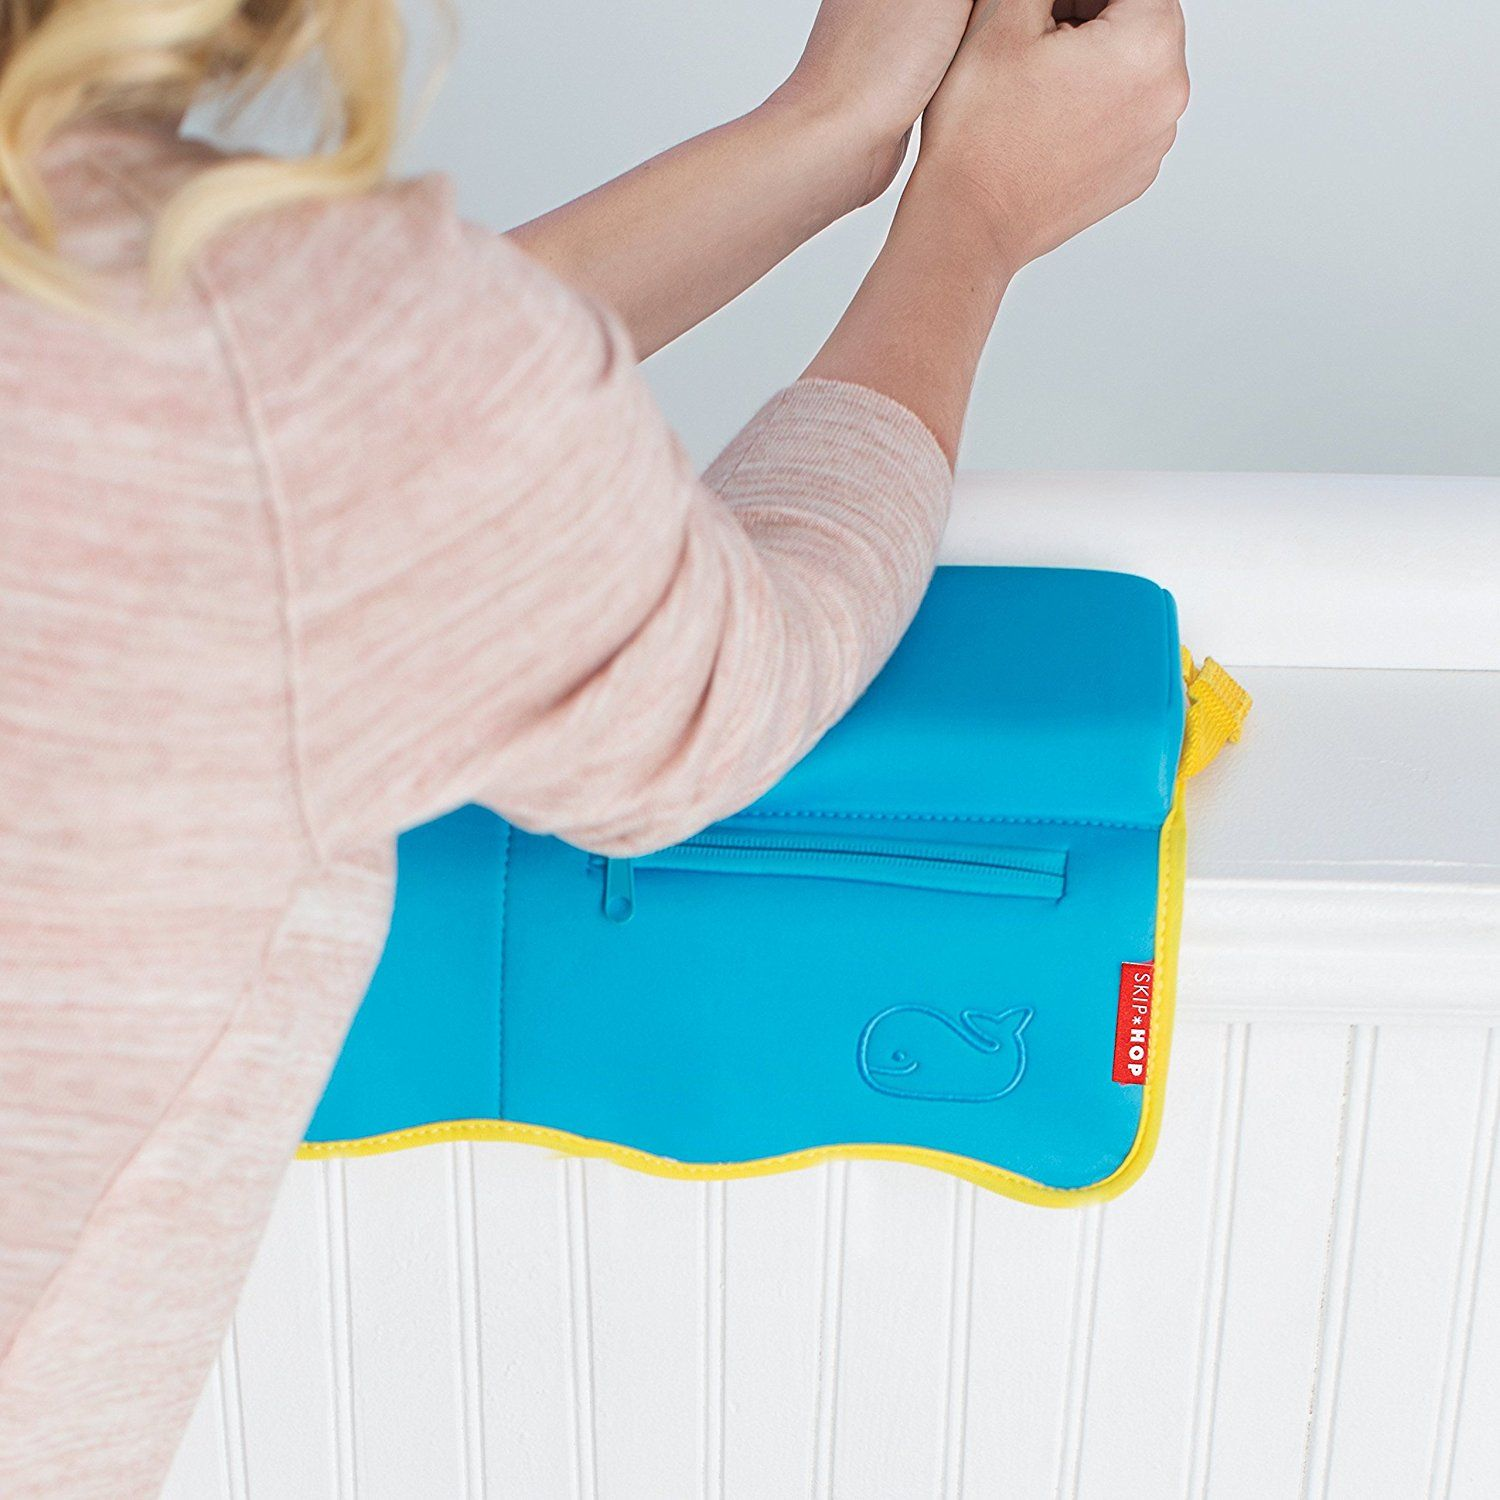 Amazon.com : Skip Hop Moby Bath Elbow Saver, Blue : Bathtub Side ...